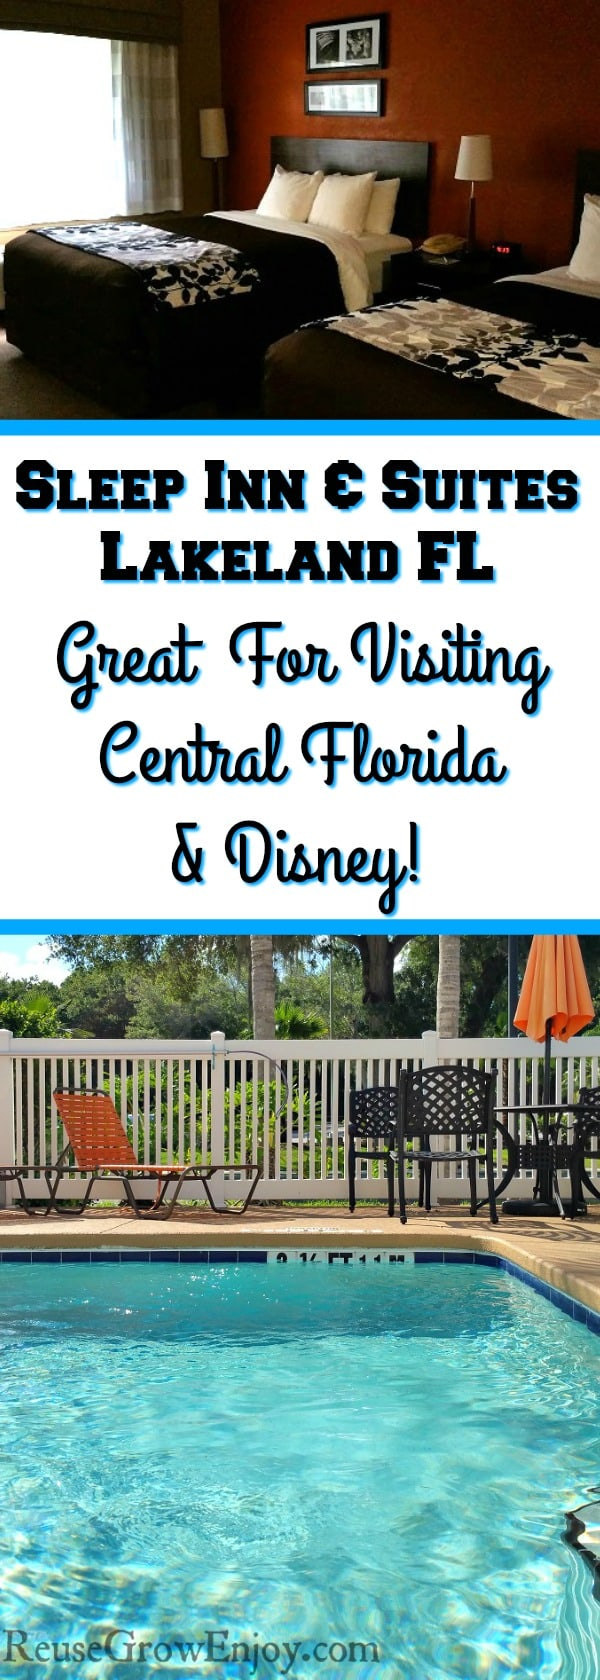 Sleep Inn & Suites Lakeland Florida   Great Place & Price For Visiting Central Florida Attractions Like Disney World!